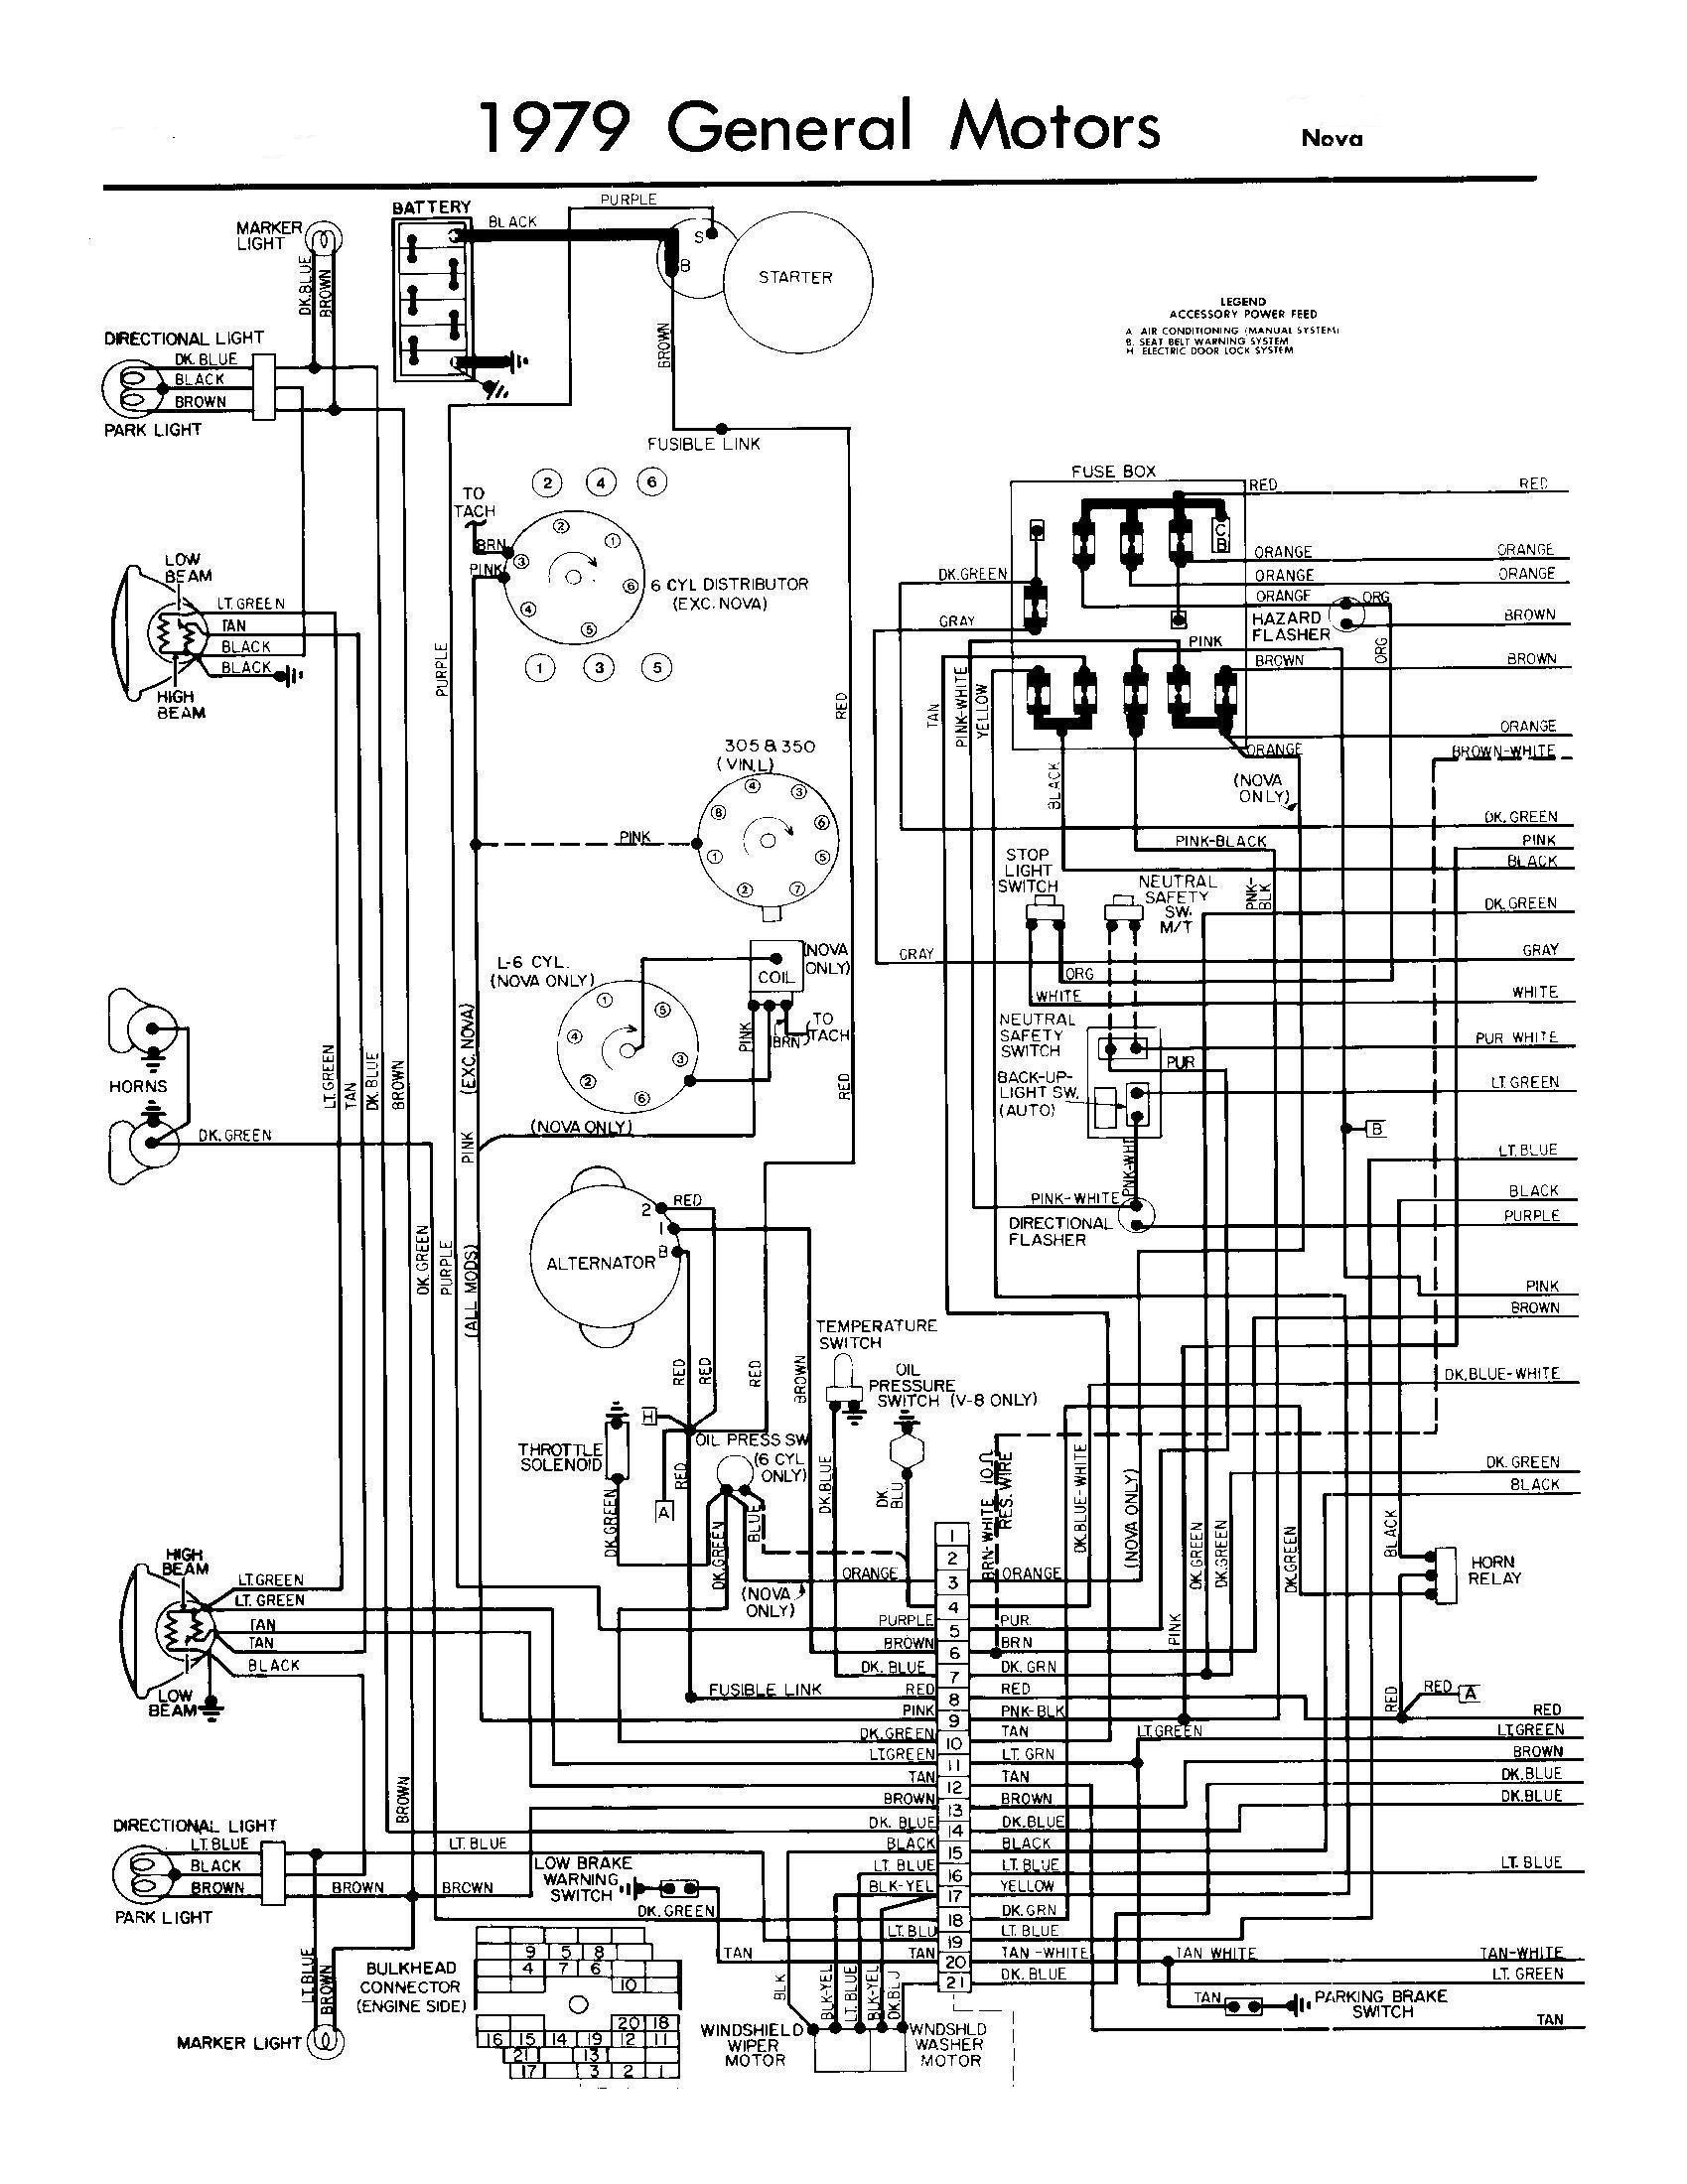 75 dodge headlight circuit diagram list of schematic circuit diagram Audi Wiring Diagram